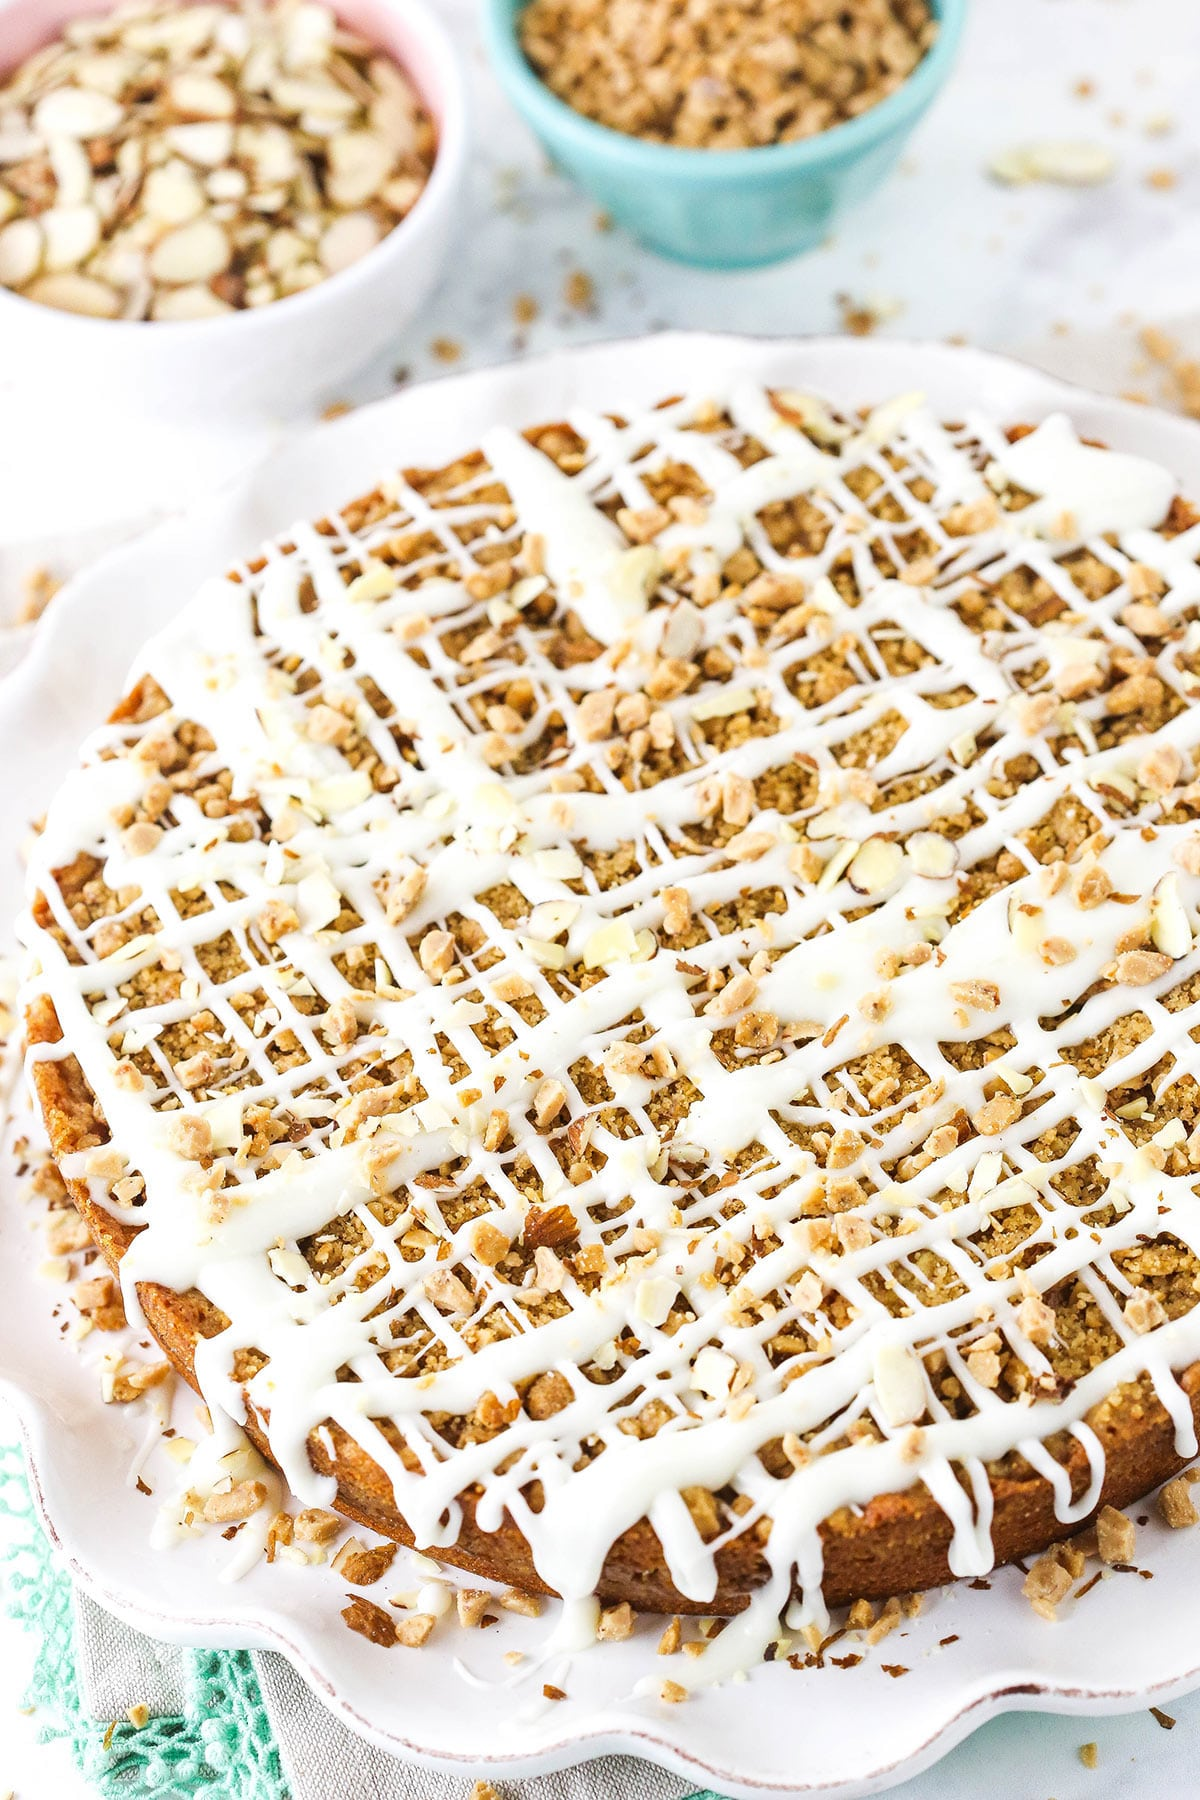 A coffee cake covered in drizzles of glaze, slivered almonds and toffee bits